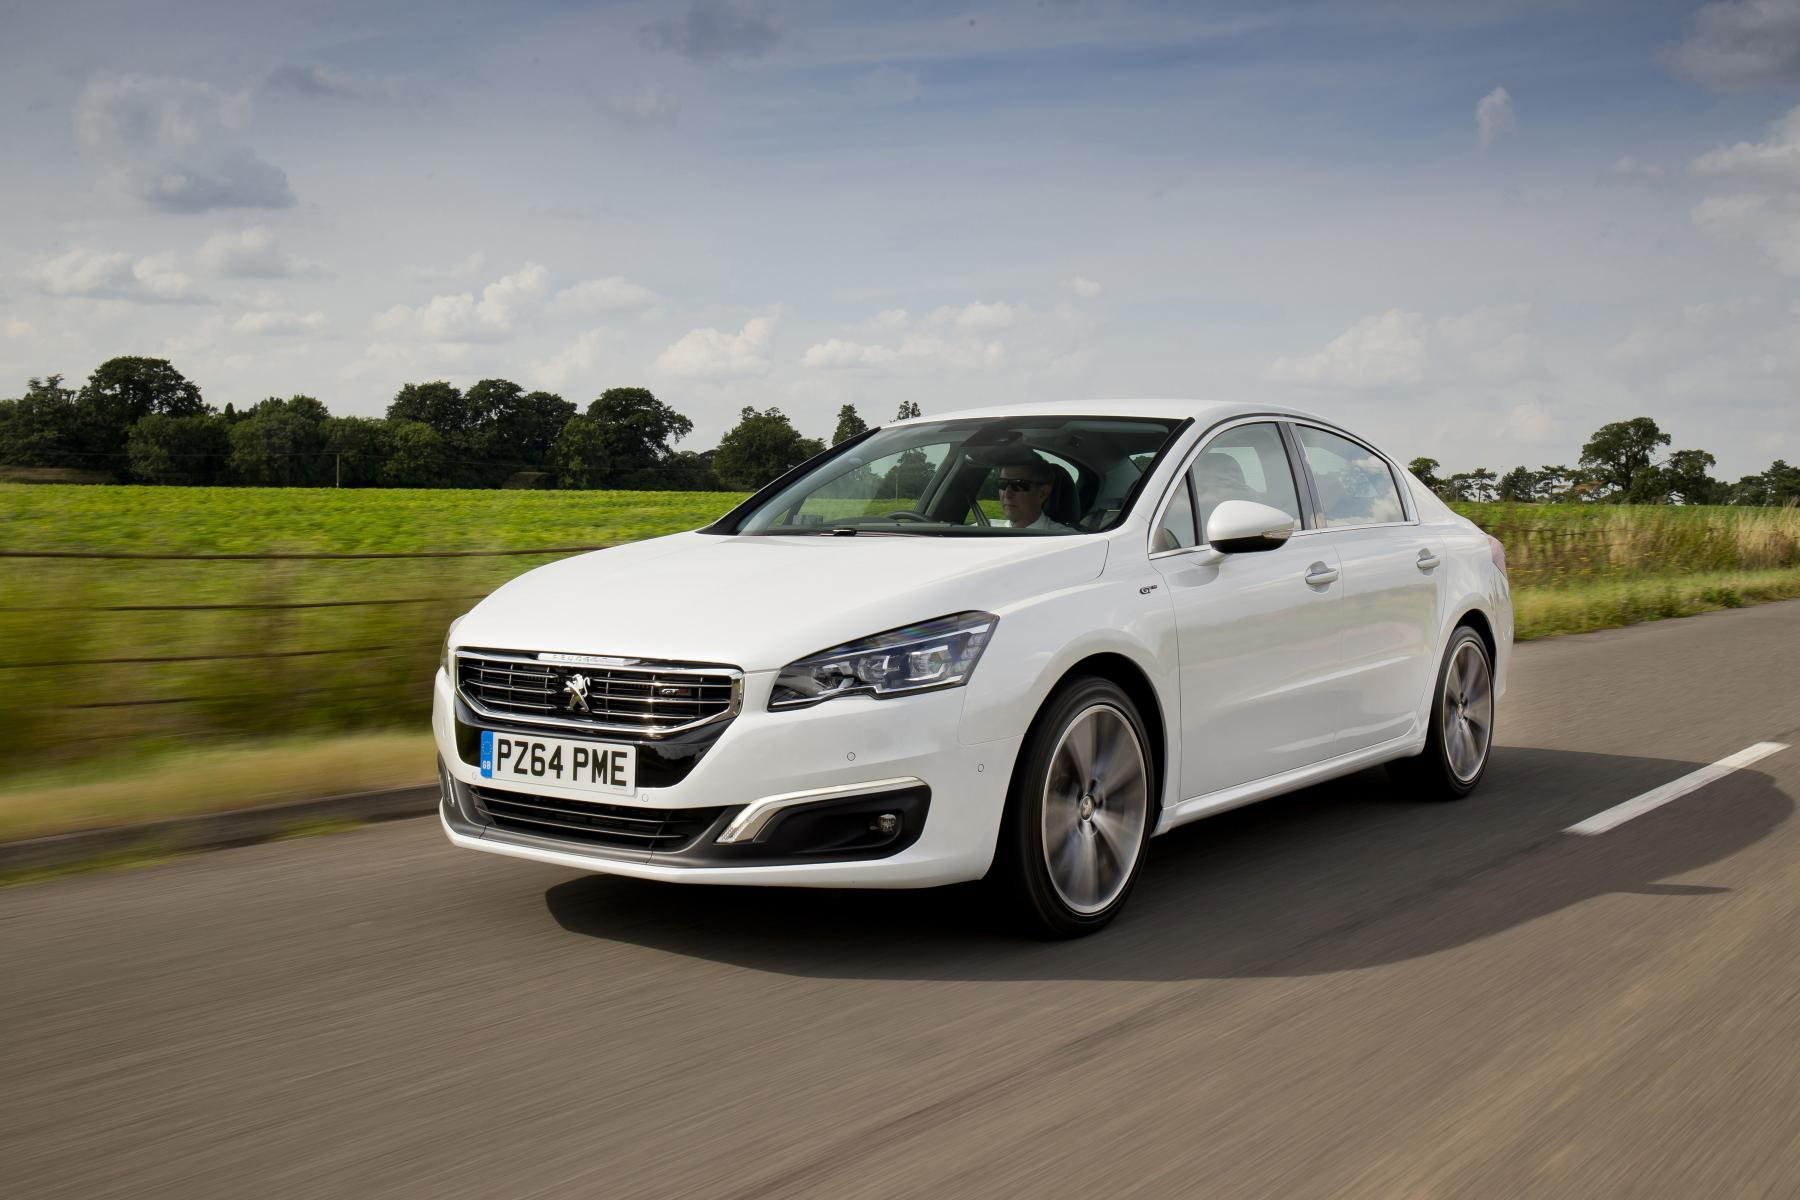 new peugeot 508 priced from 22 054 in the uk video. Black Bedroom Furniture Sets. Home Design Ideas